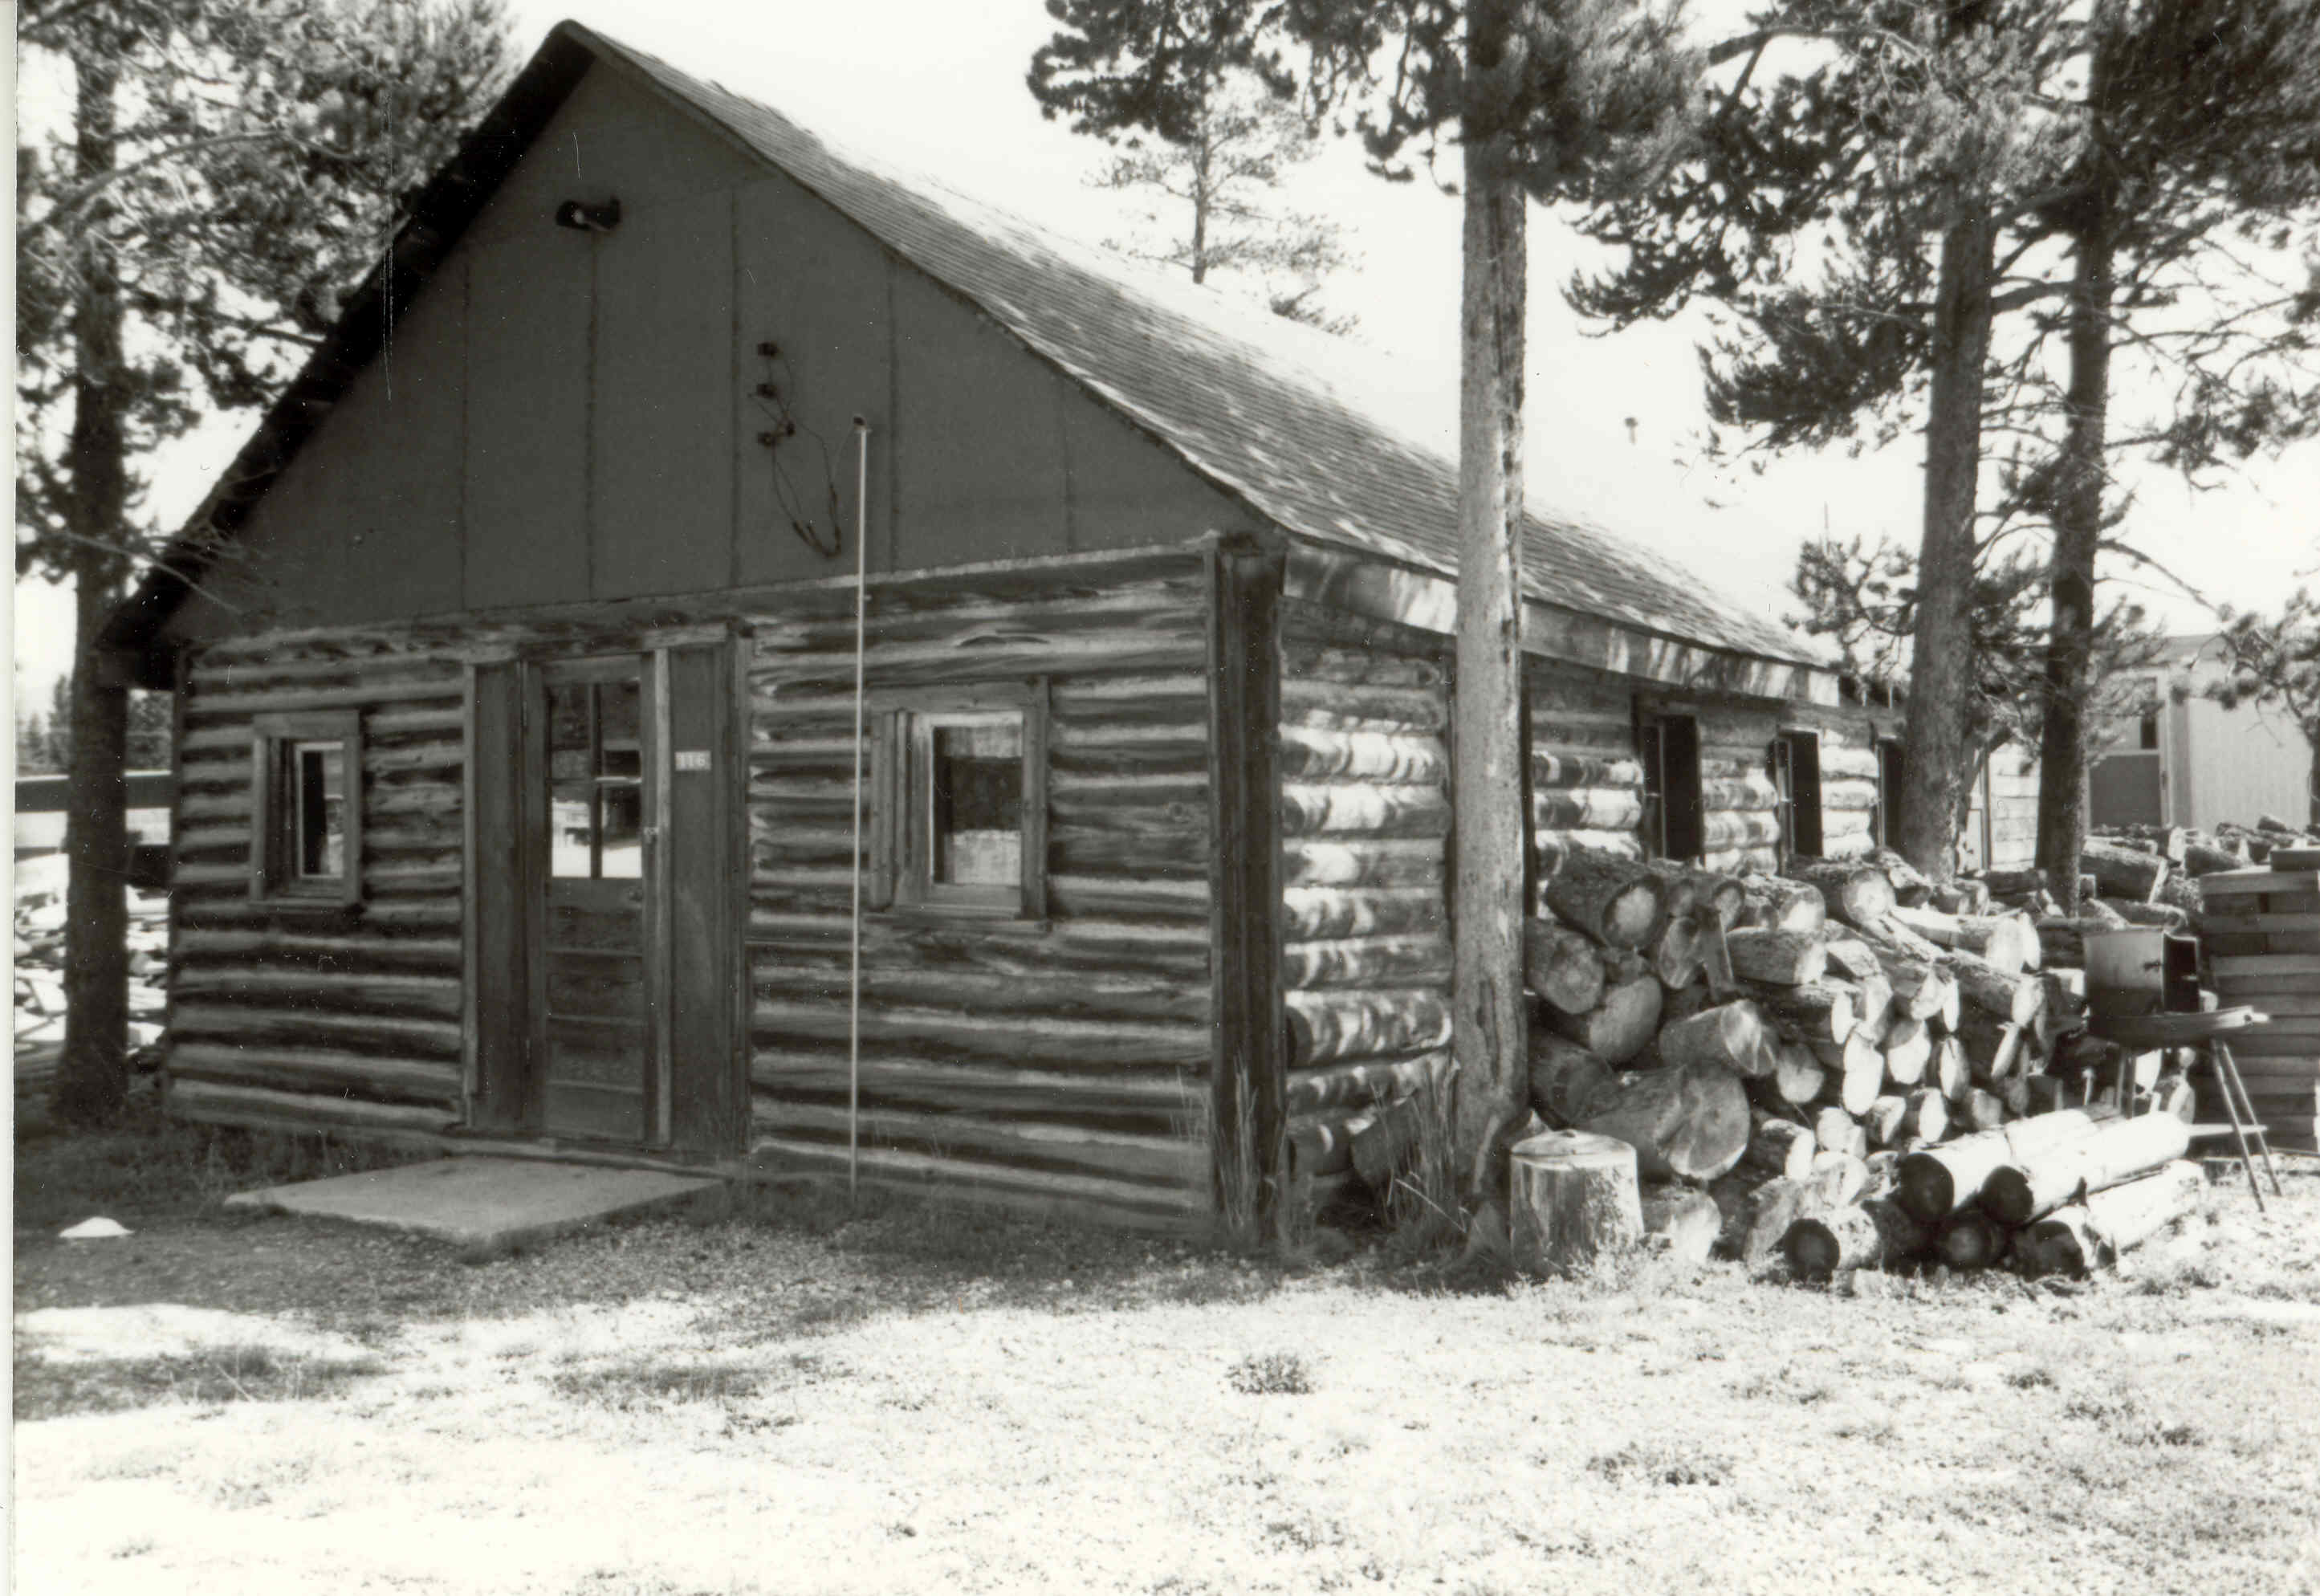 The Log Chapel in its original setting